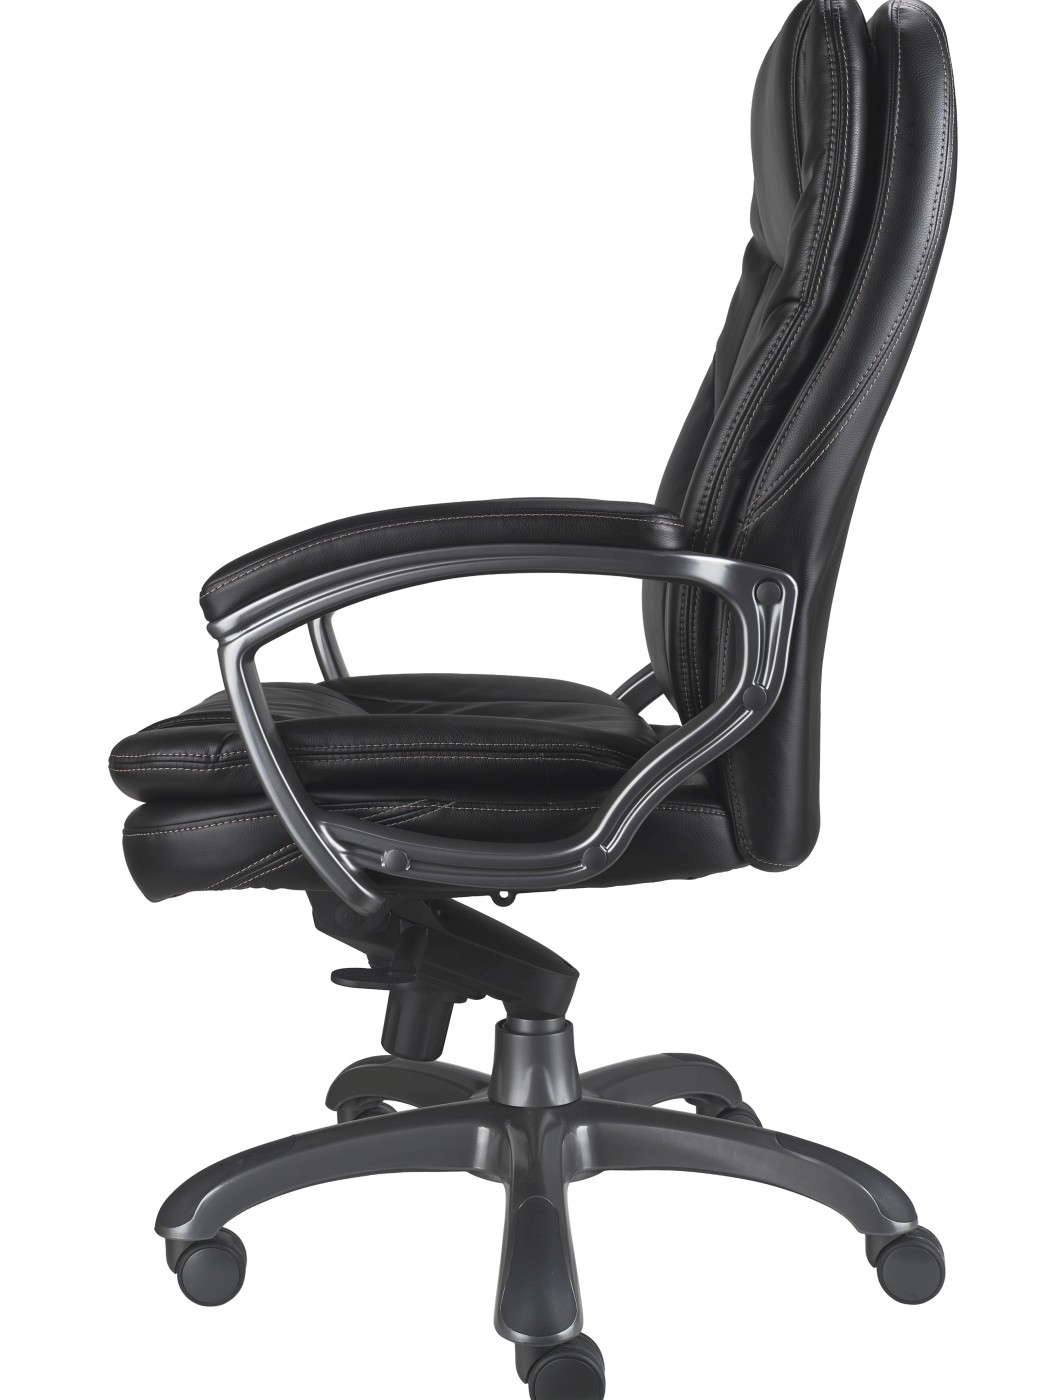 Kiev Leather Office Chair BCL/U646